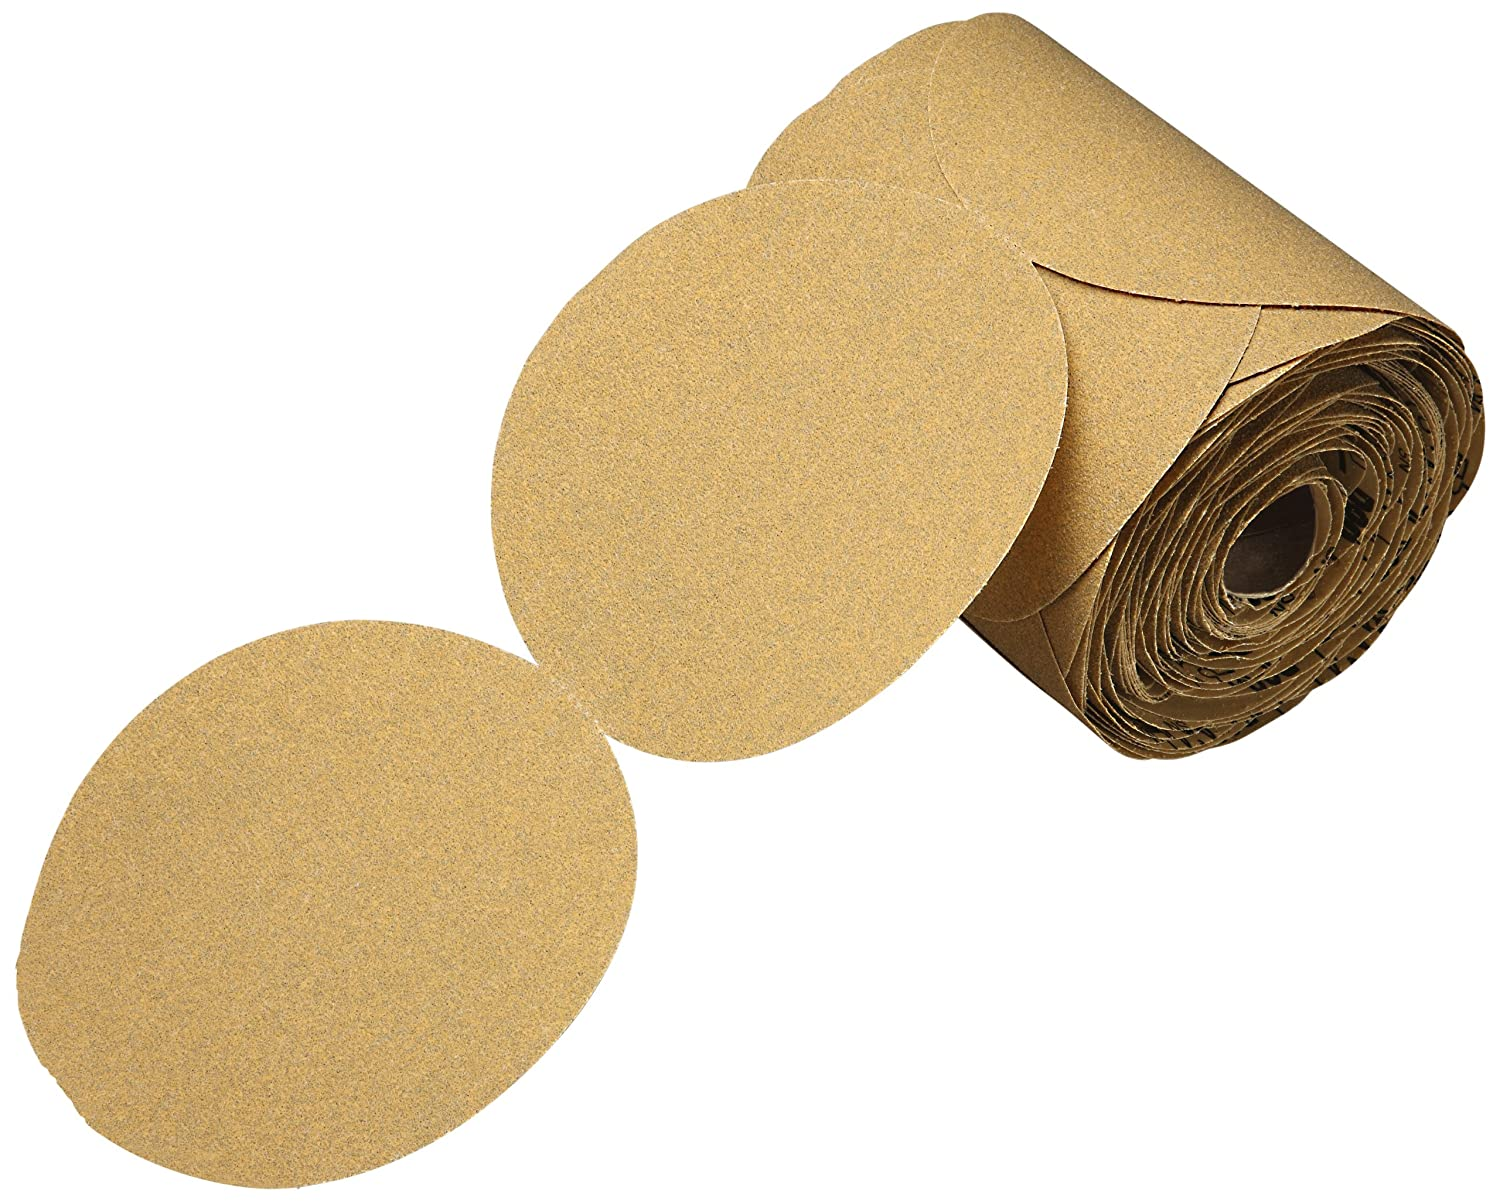 3M Stikit Gold Paper Disc Roll 216U, 5 in x NH P180 A-weight, 175 discs per roll 91siQCdj3fL